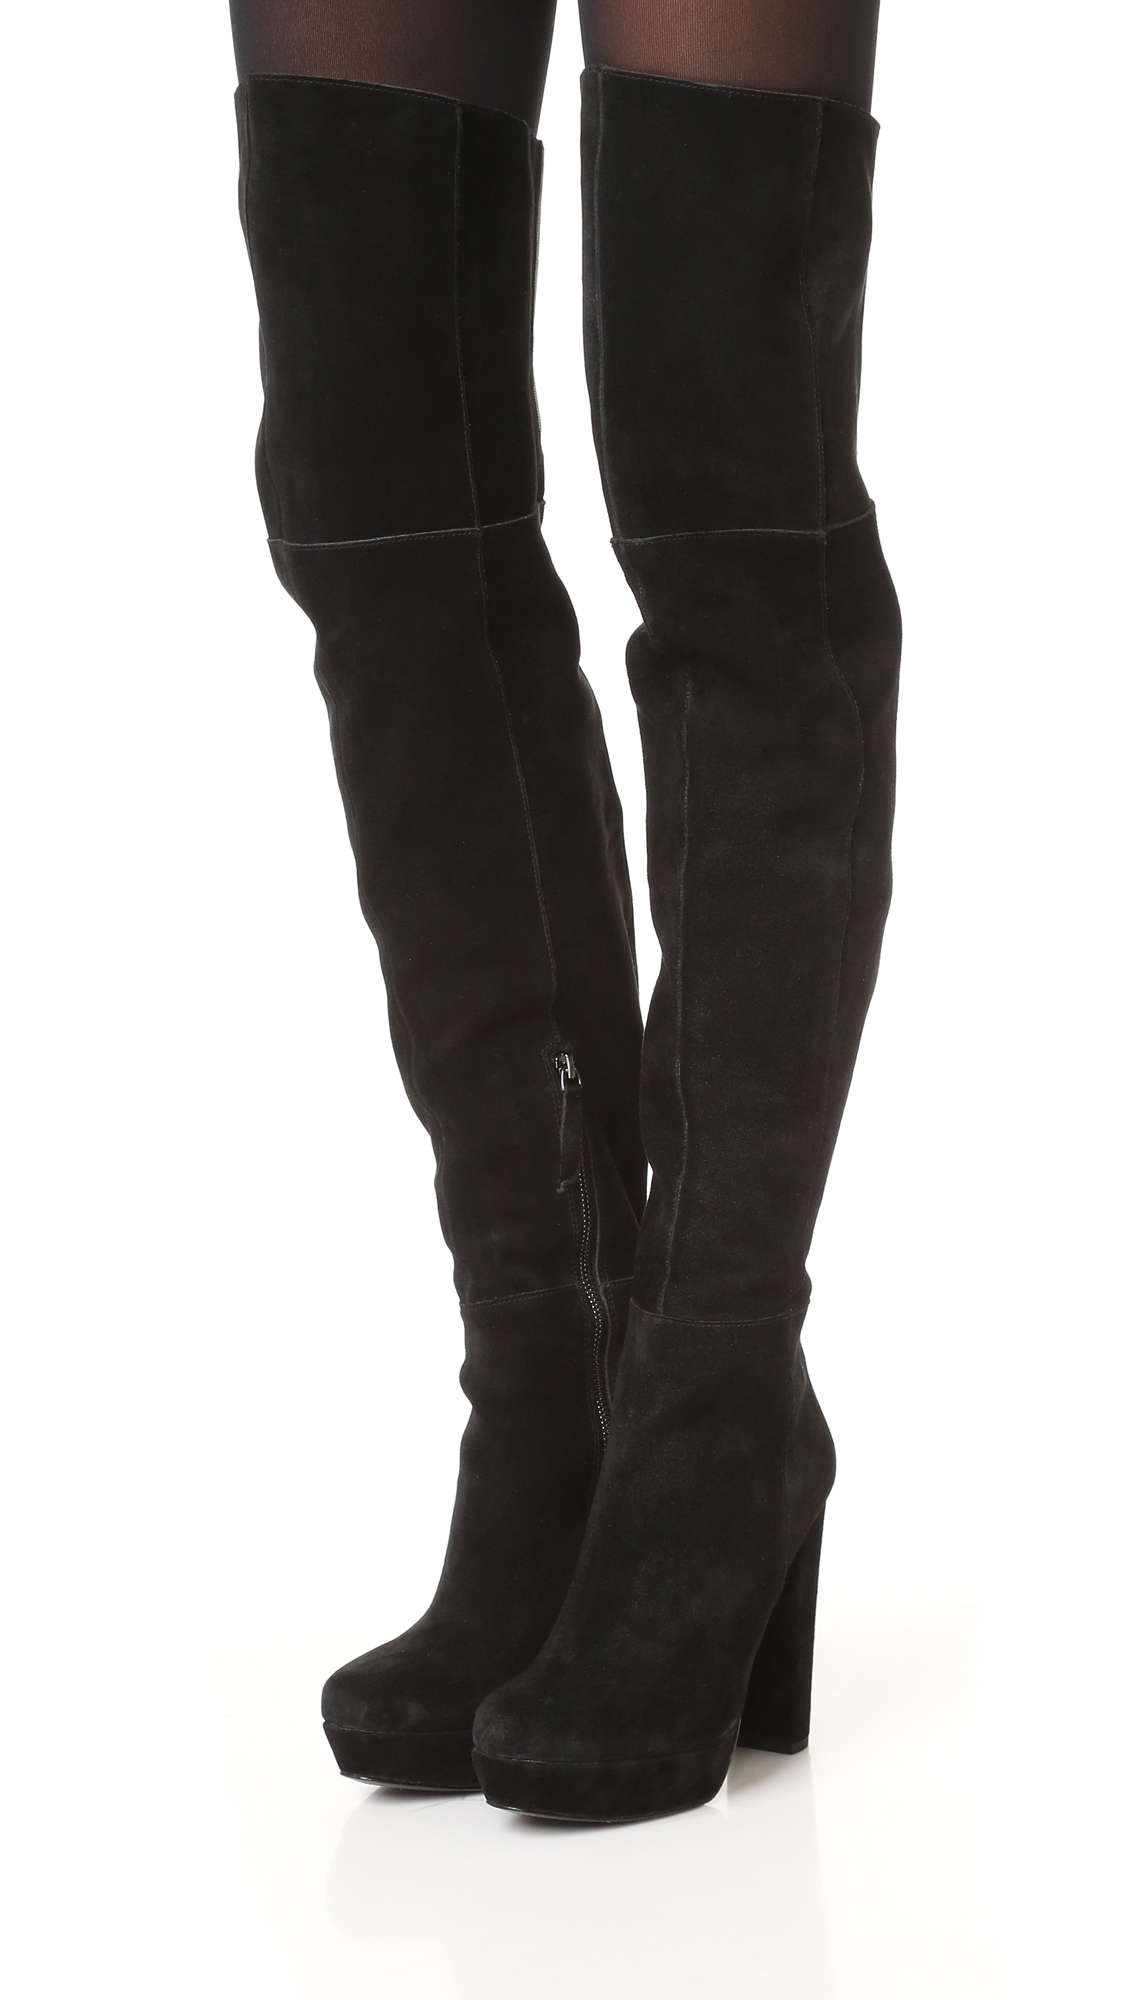 Alice + Olivia Suede Halle Over The Knee Boots in Black